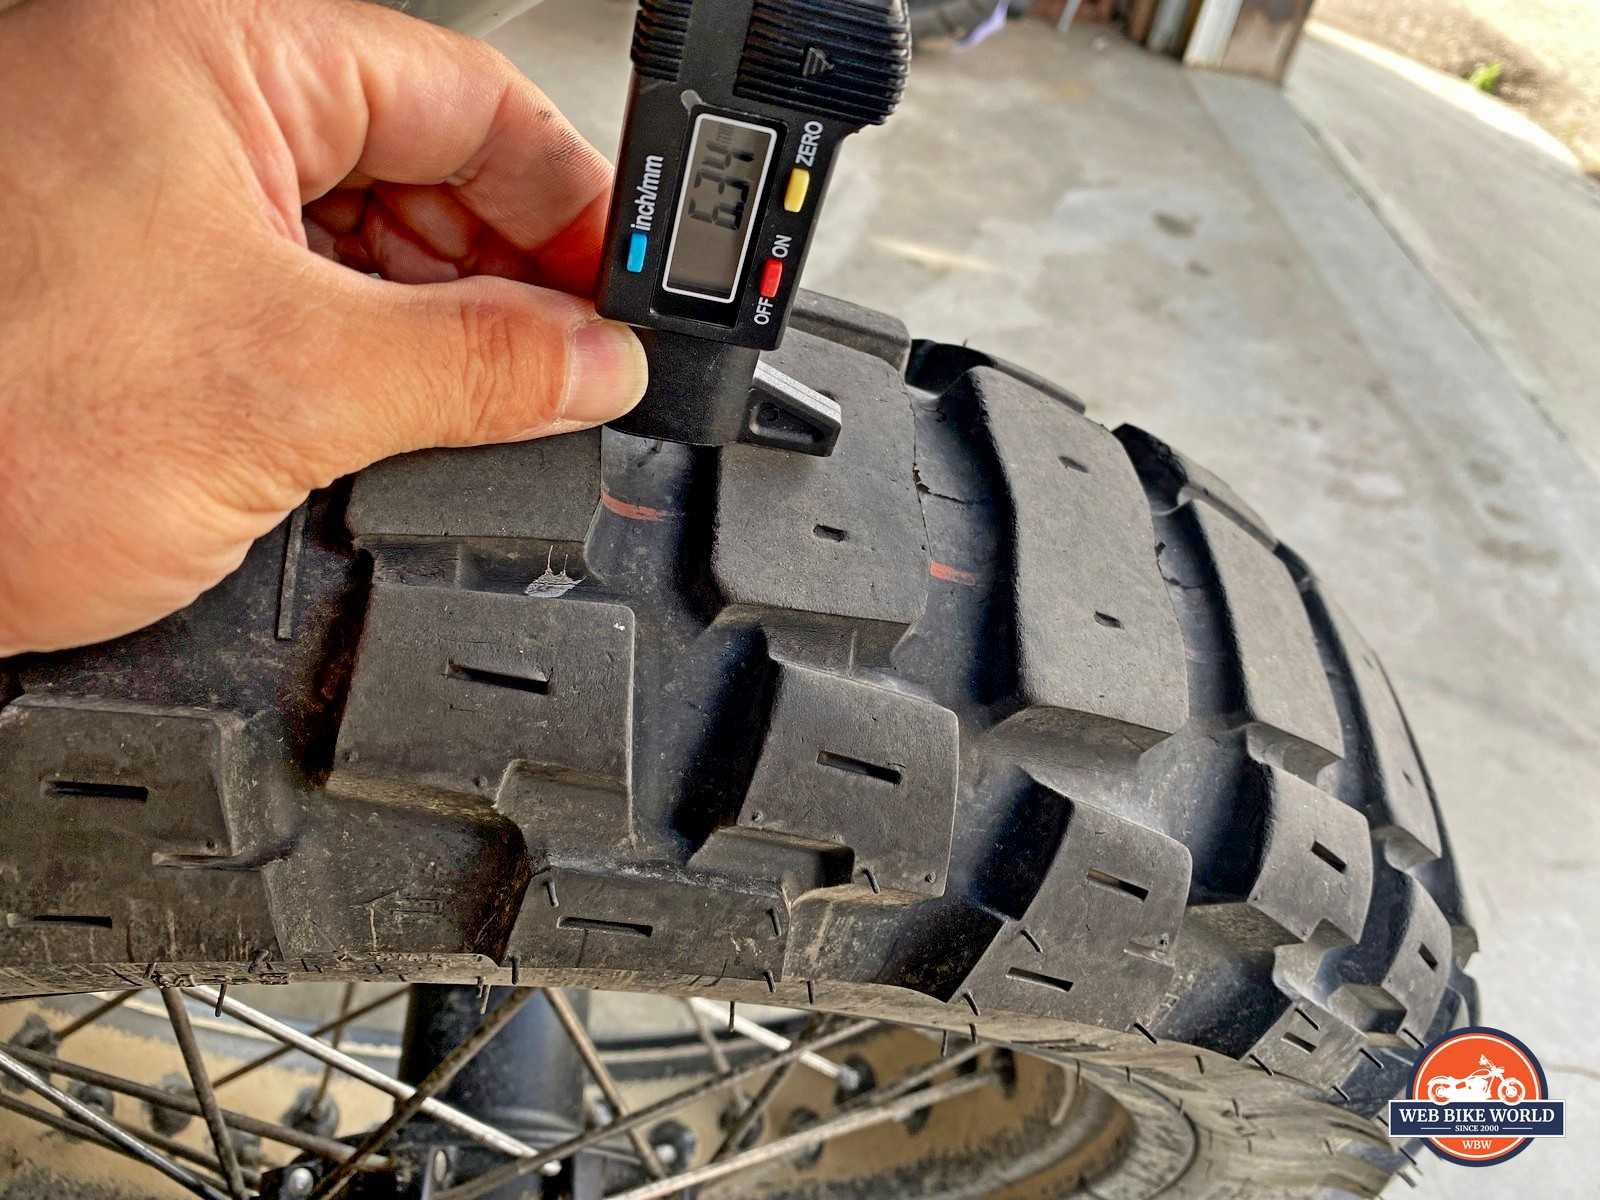 Motoz Tractionator Adventure rear tire after 5000 miles.